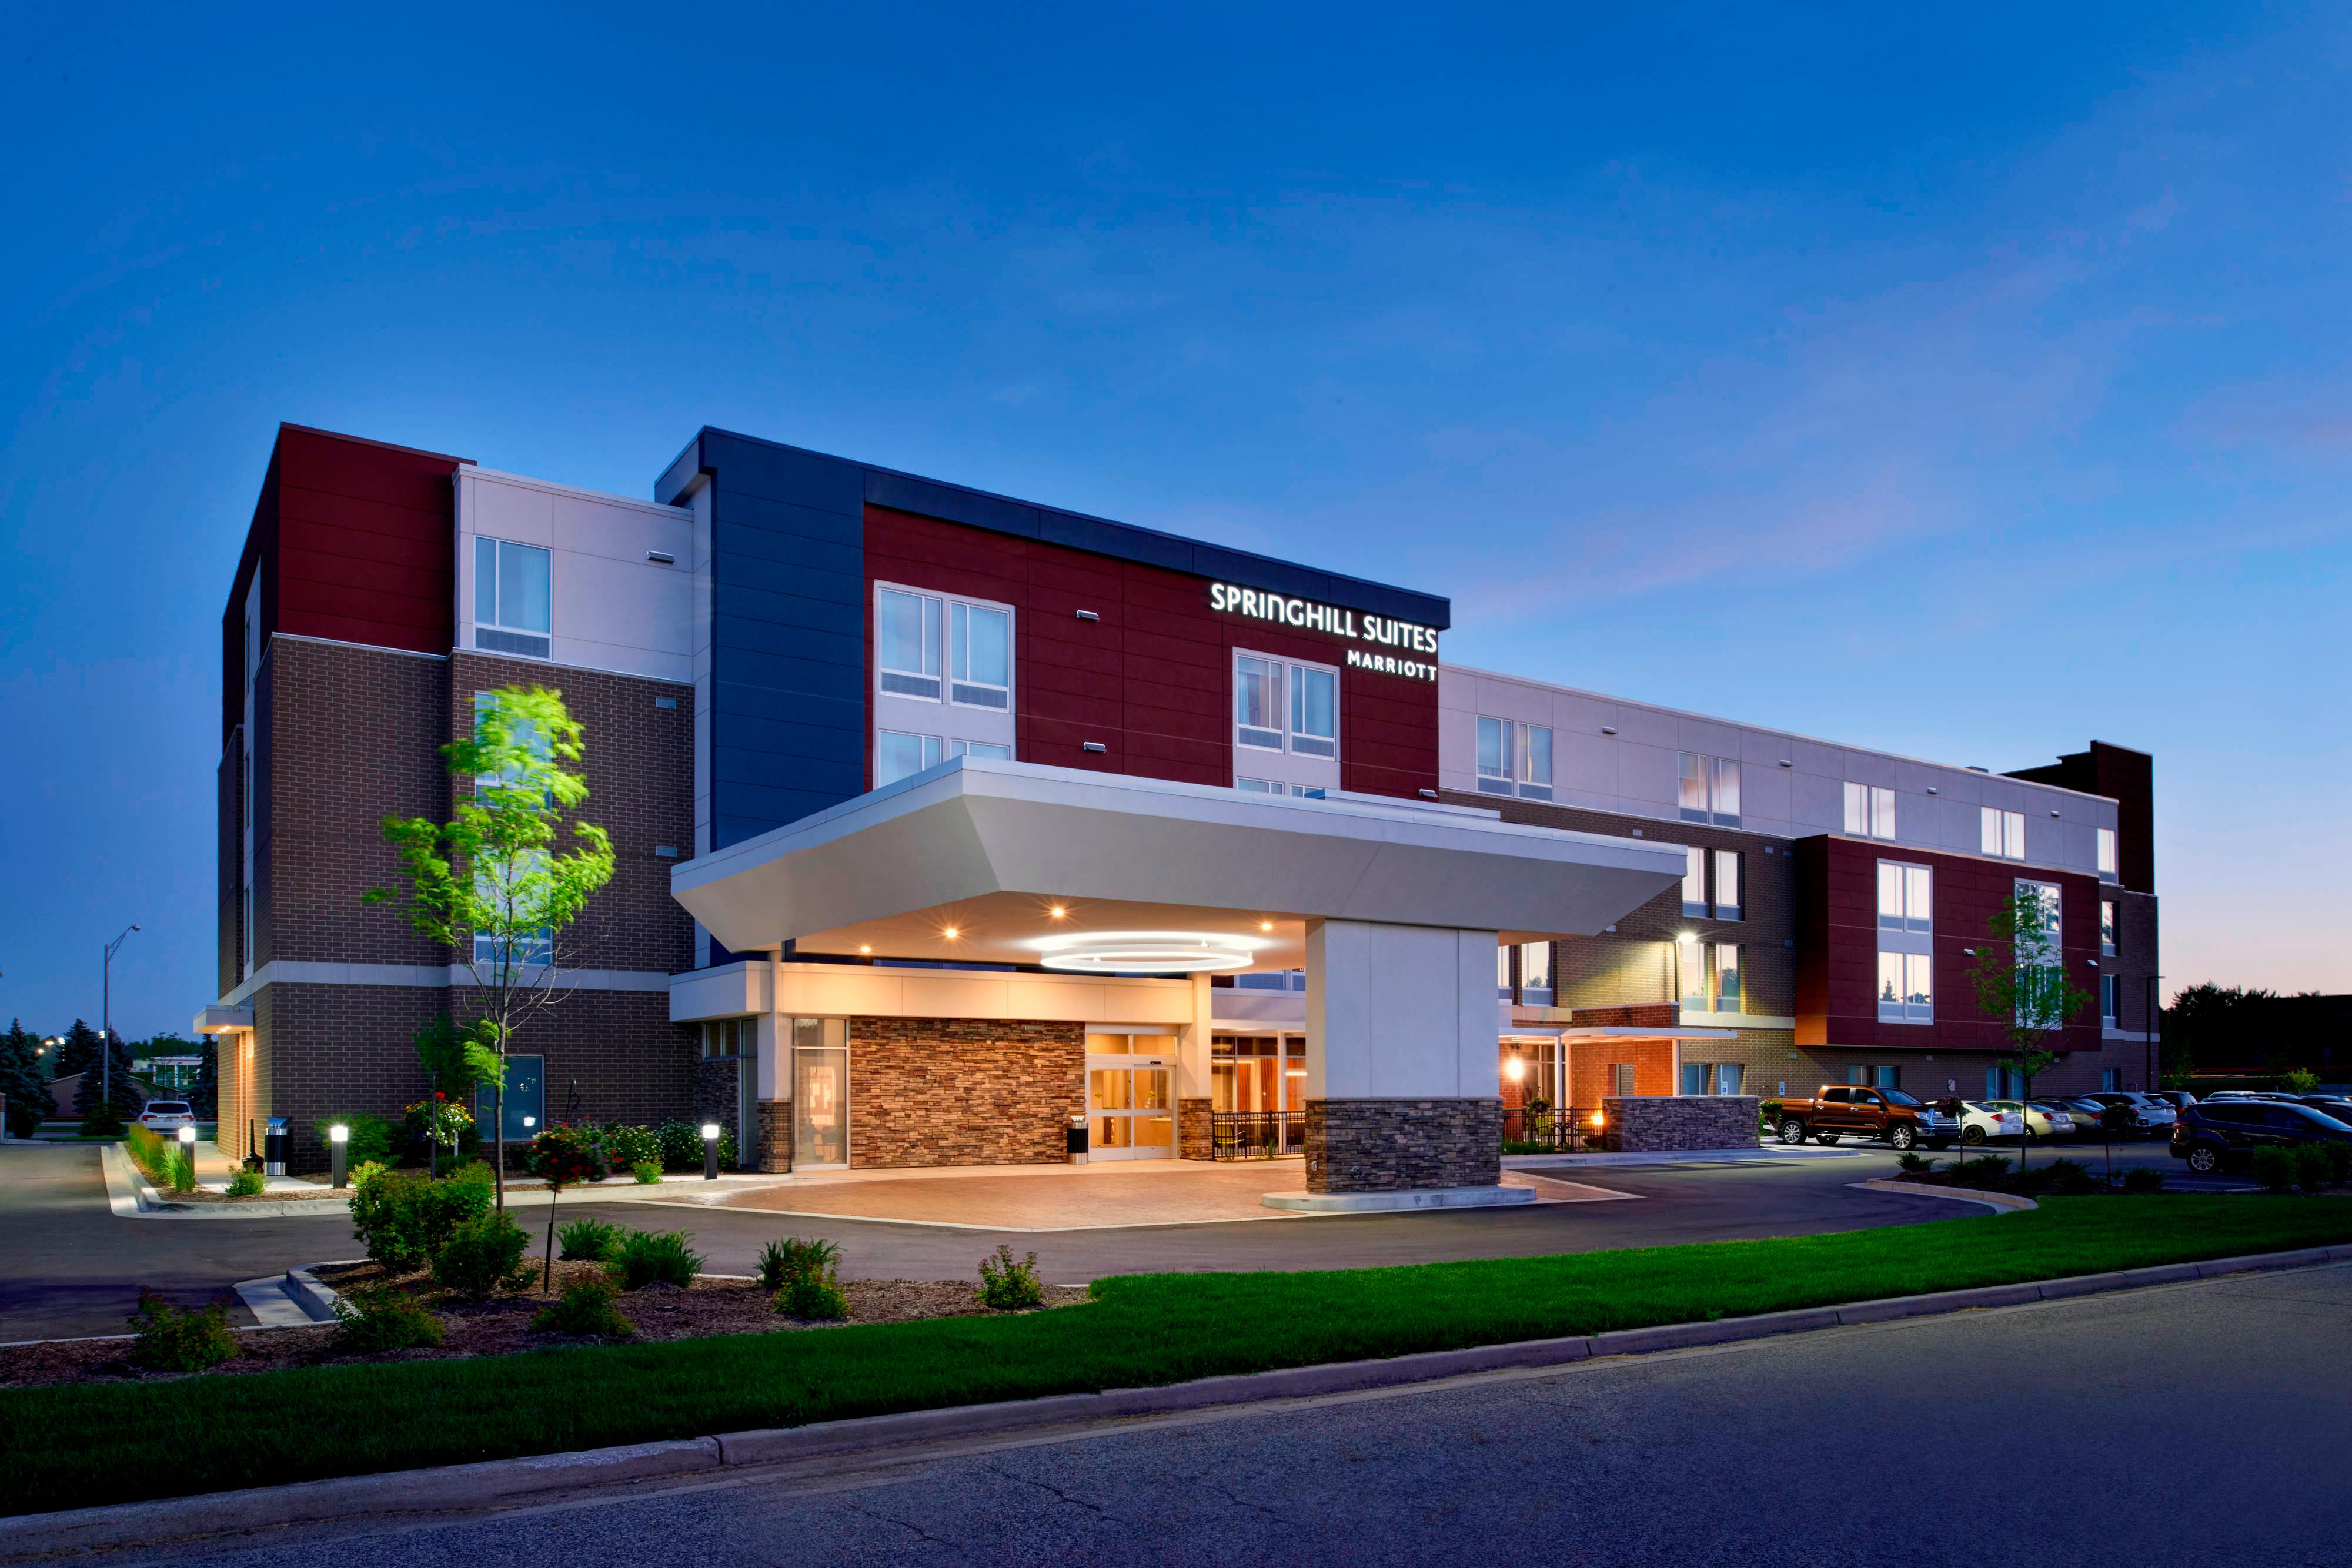 SPRINGHILL STES WEST MARRIOTT